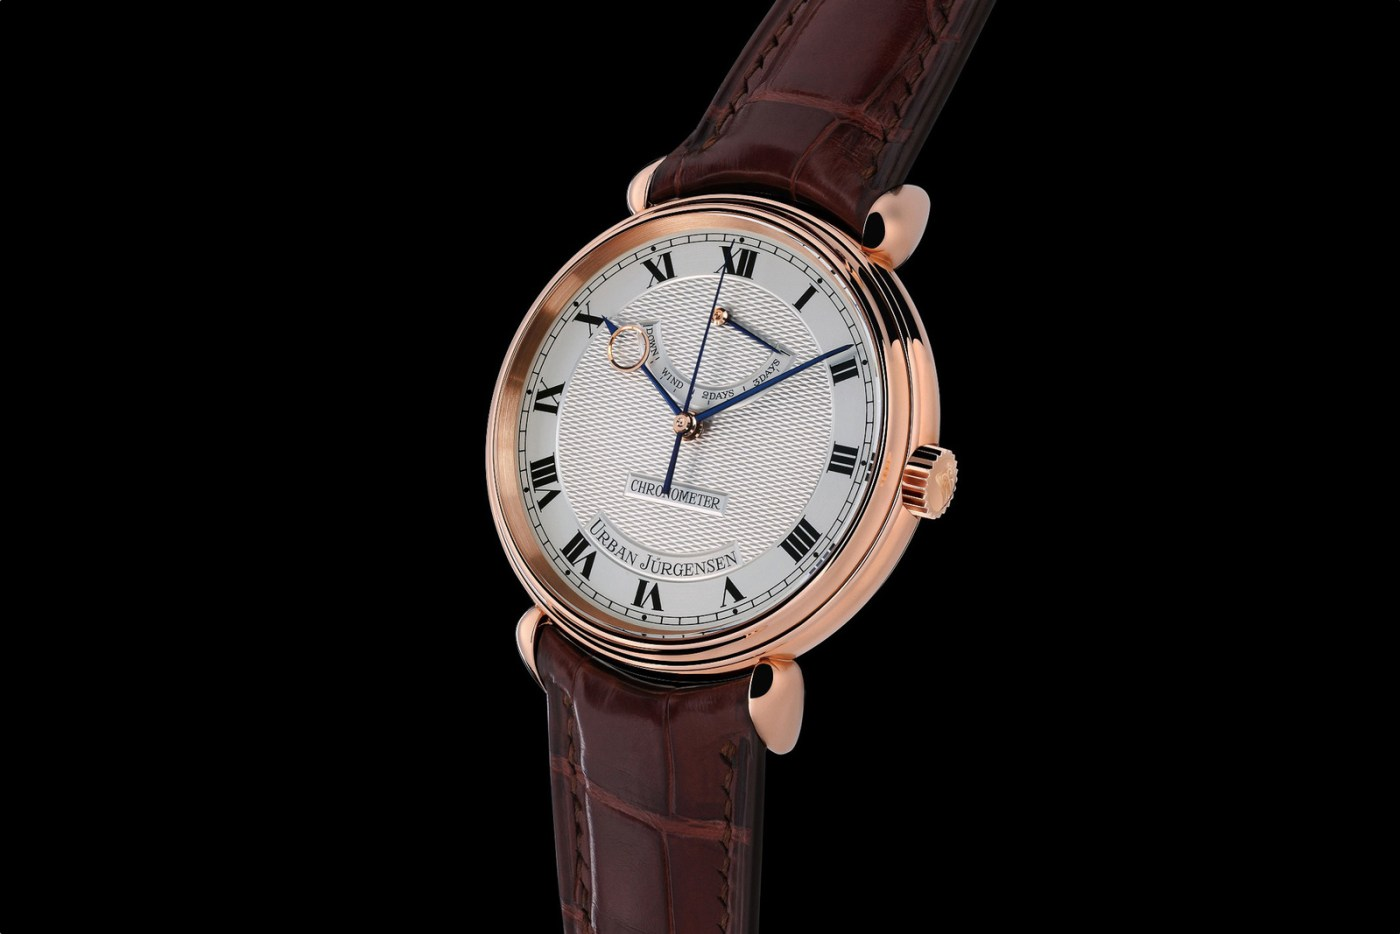 Urban Jurgensen and Sonner GPHG